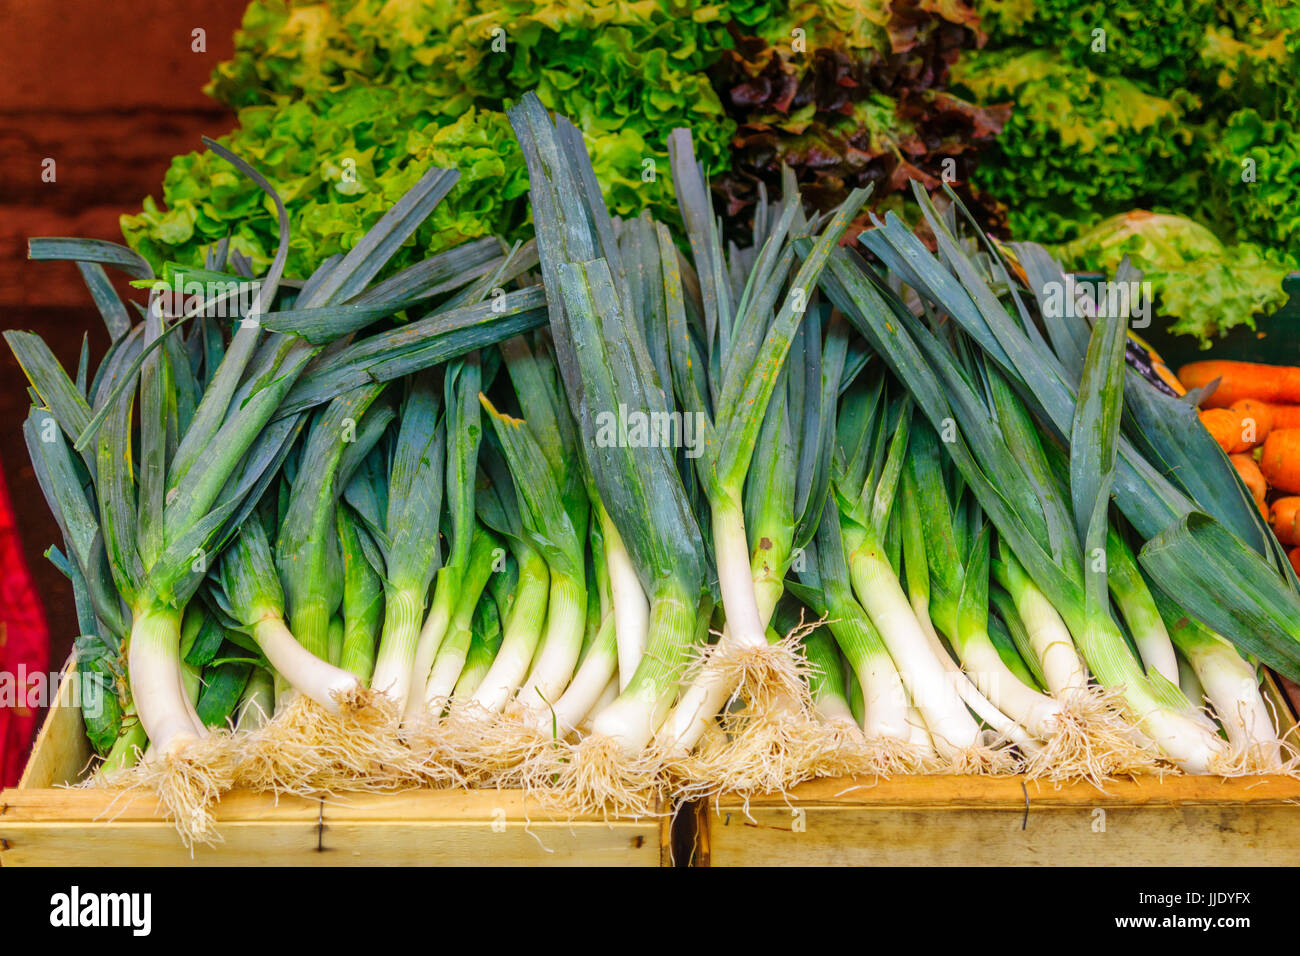 Leek on sale in a French market in Dijon, Burgundy, France - Stock Image